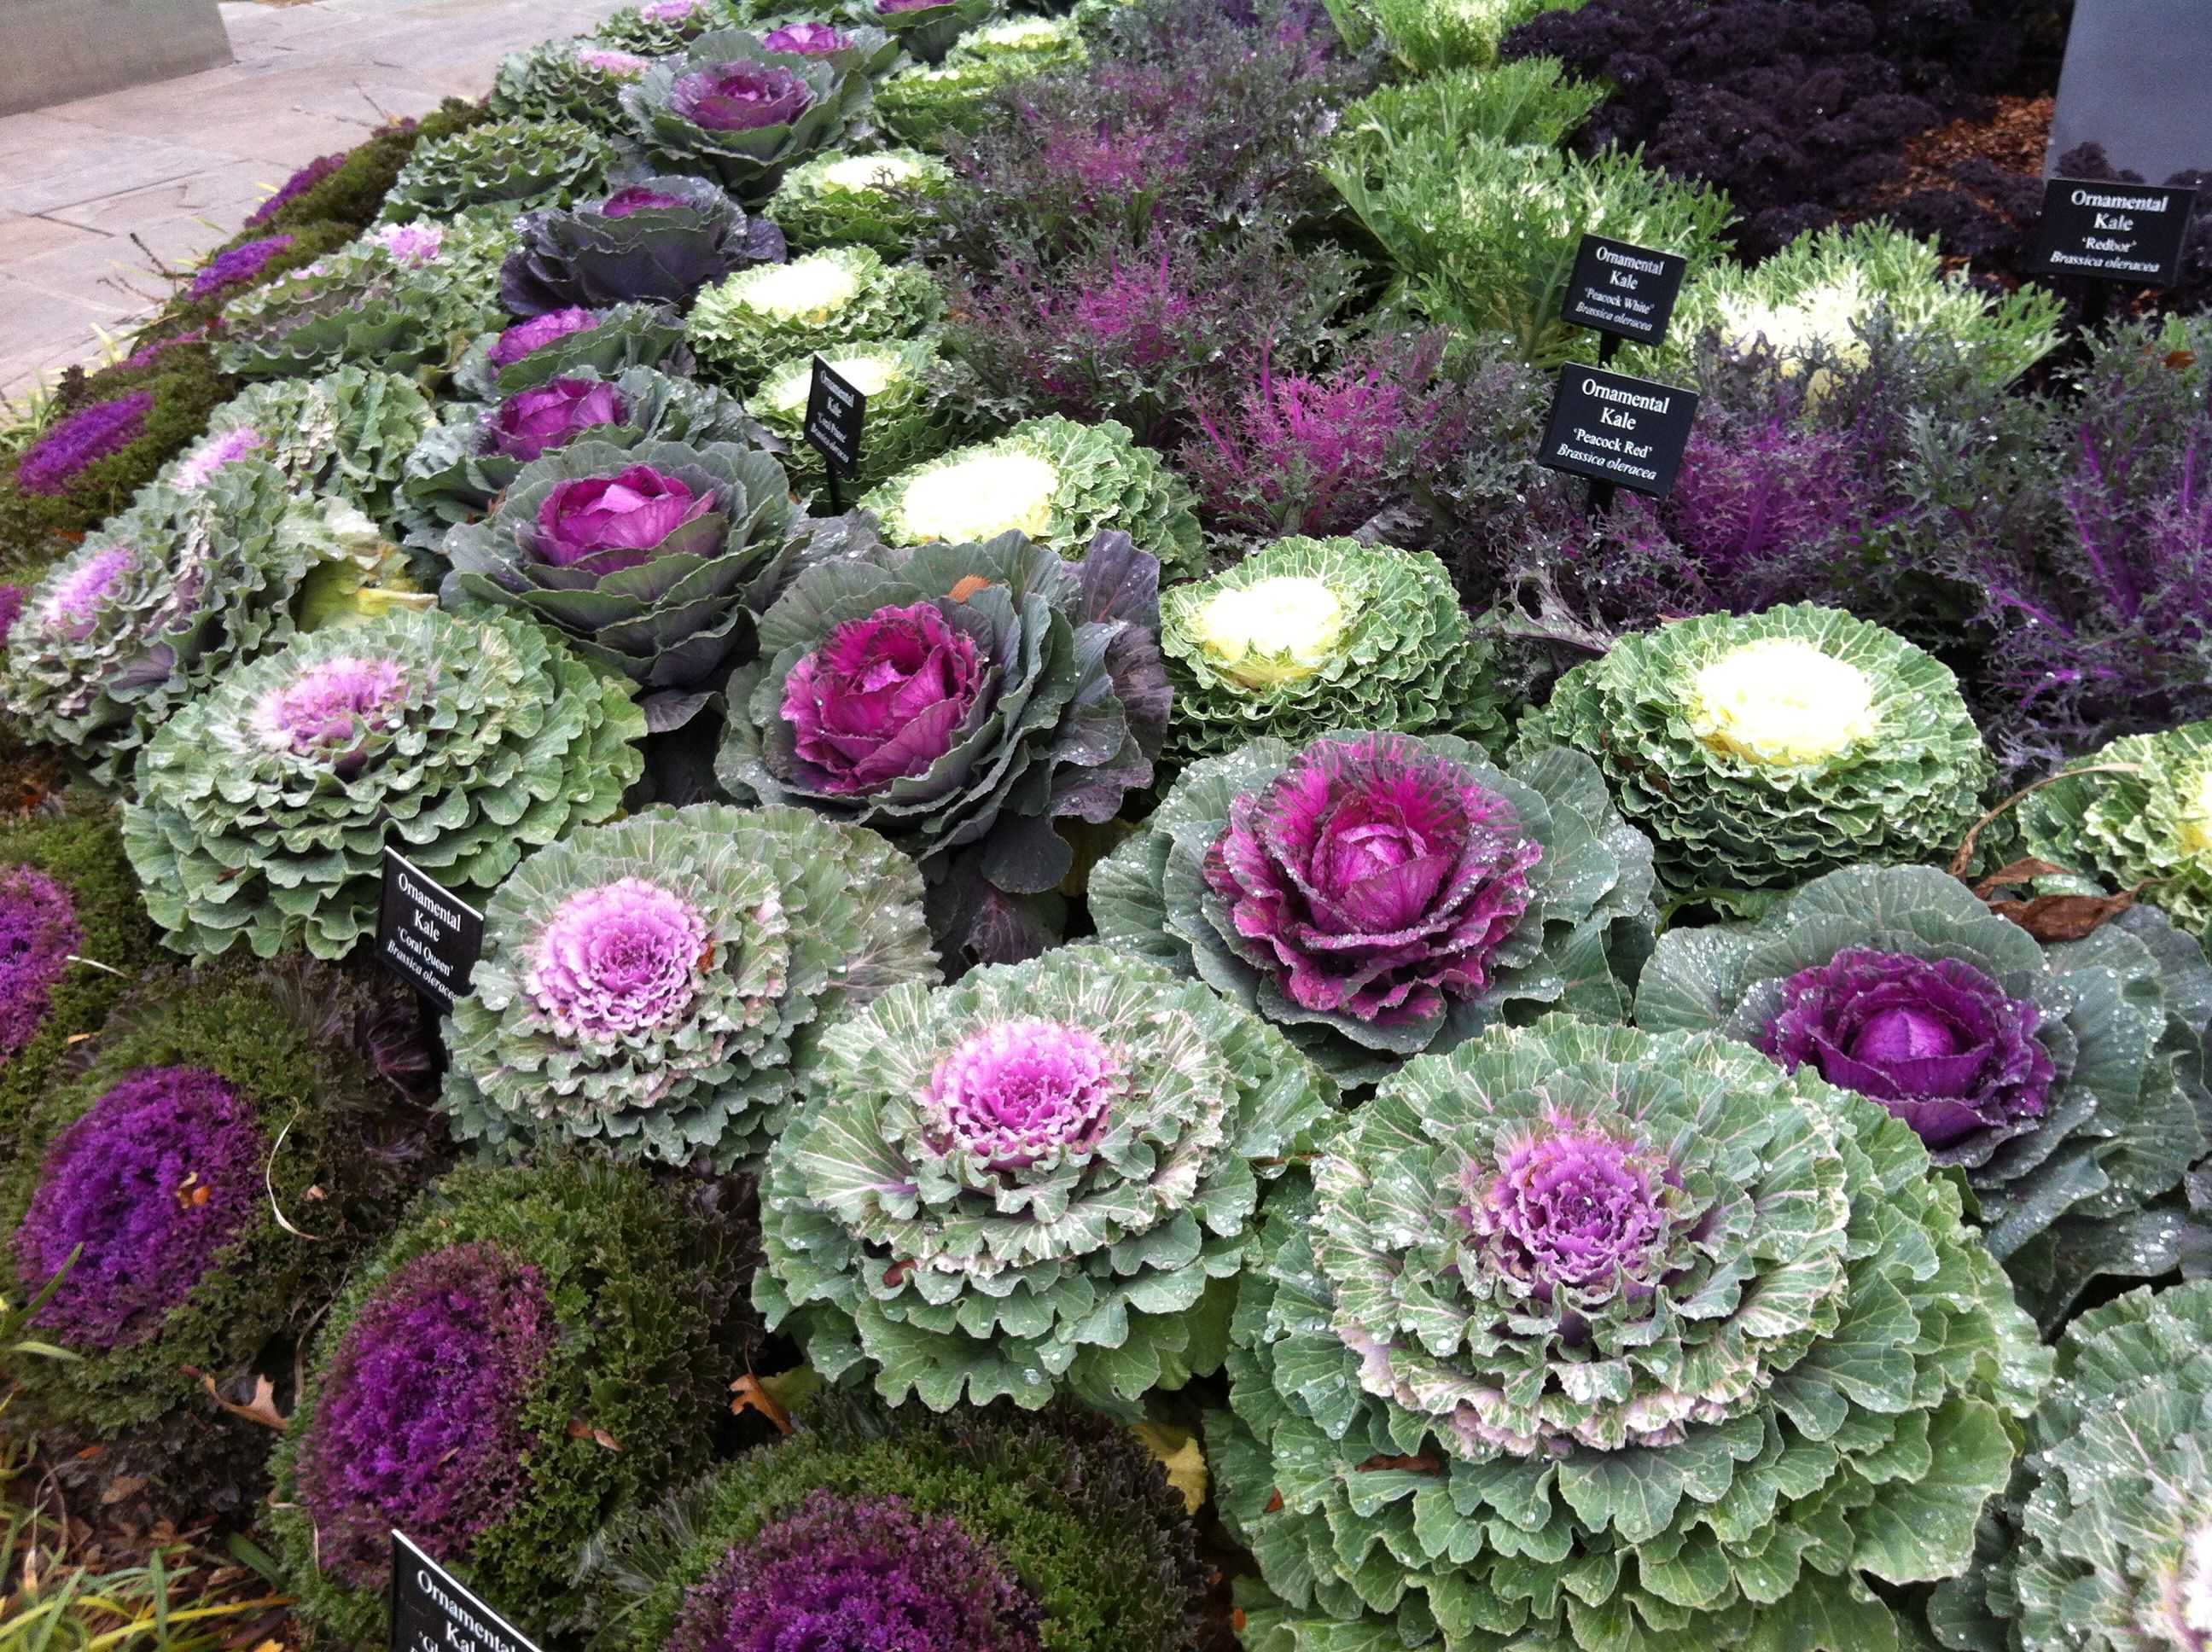 Ornamental Cabbage Dallas Ornamental Cabbage Ornamental Kale Unusual Flowers